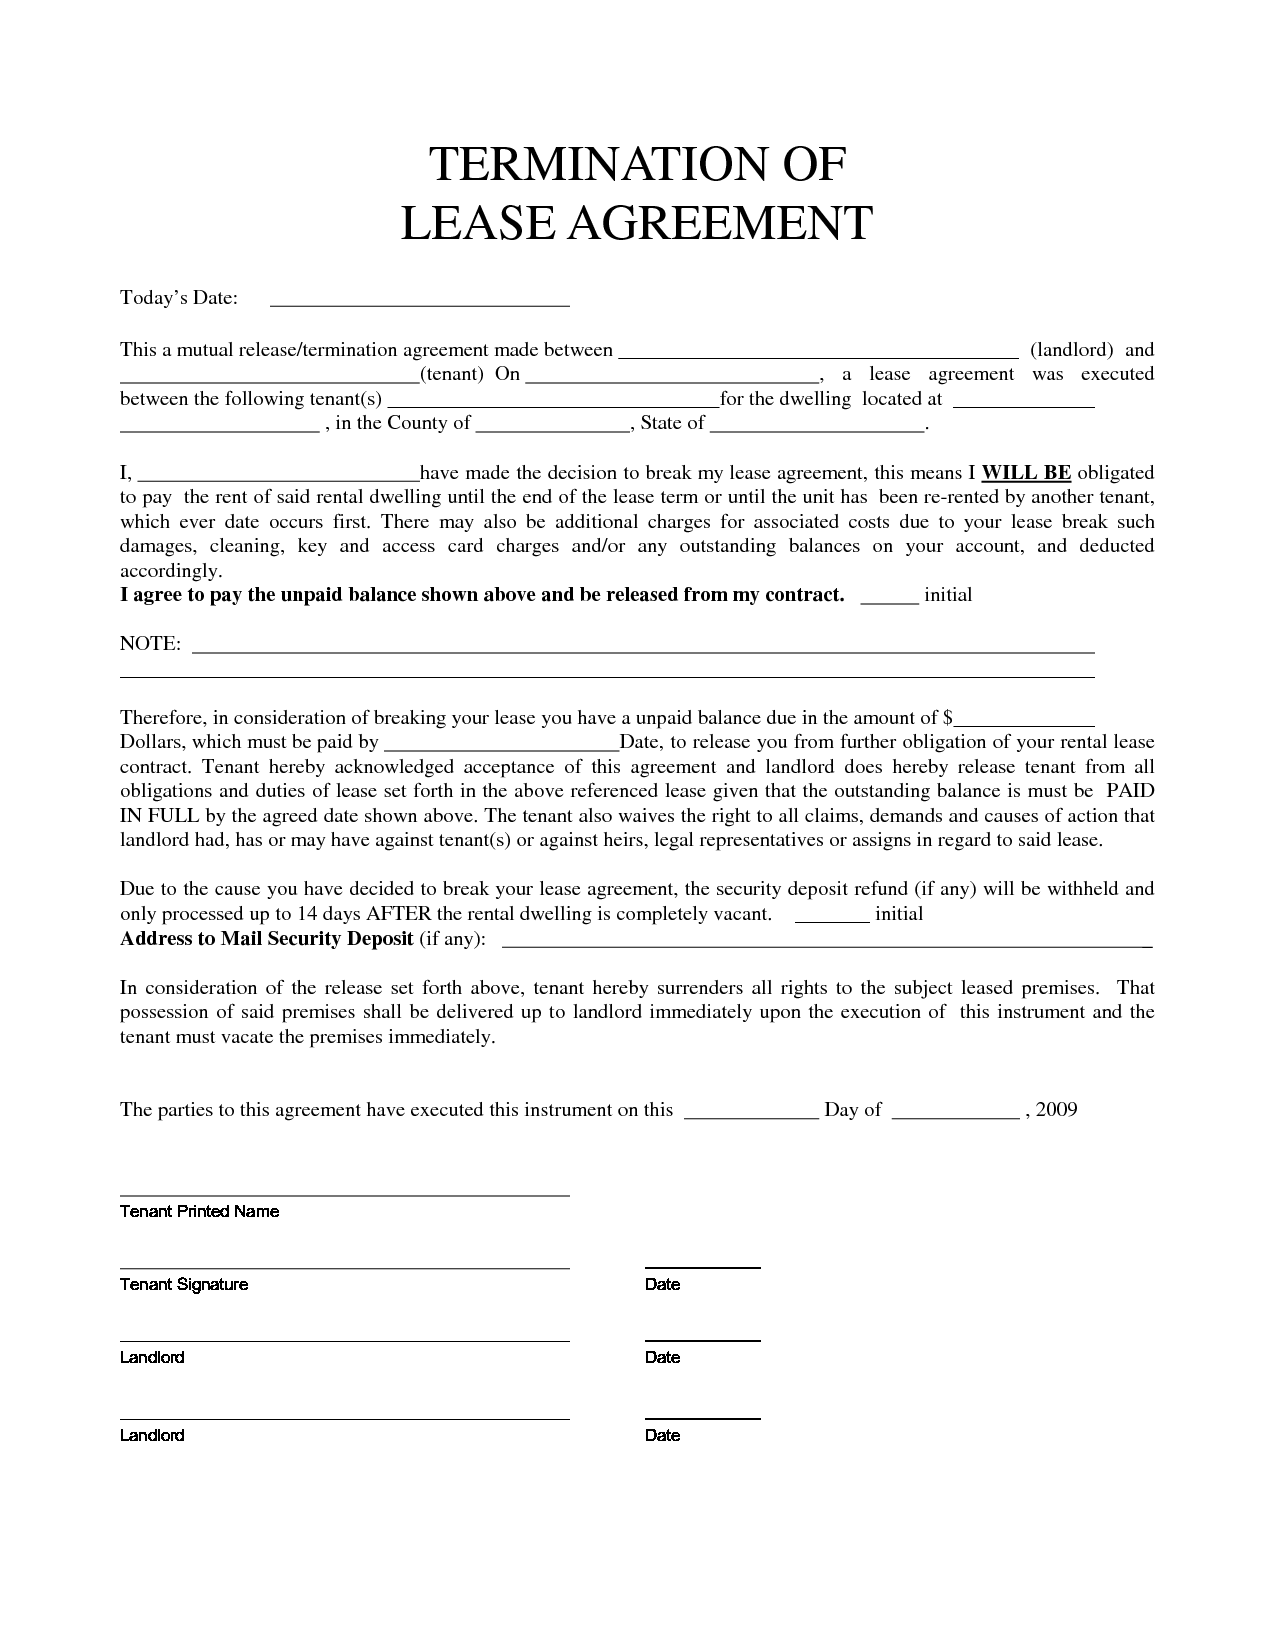 Termination Of Lease Agreement Form Free Printable Documents Lease Agreement Lease Agreement Free Printable Rental Agreement Templates